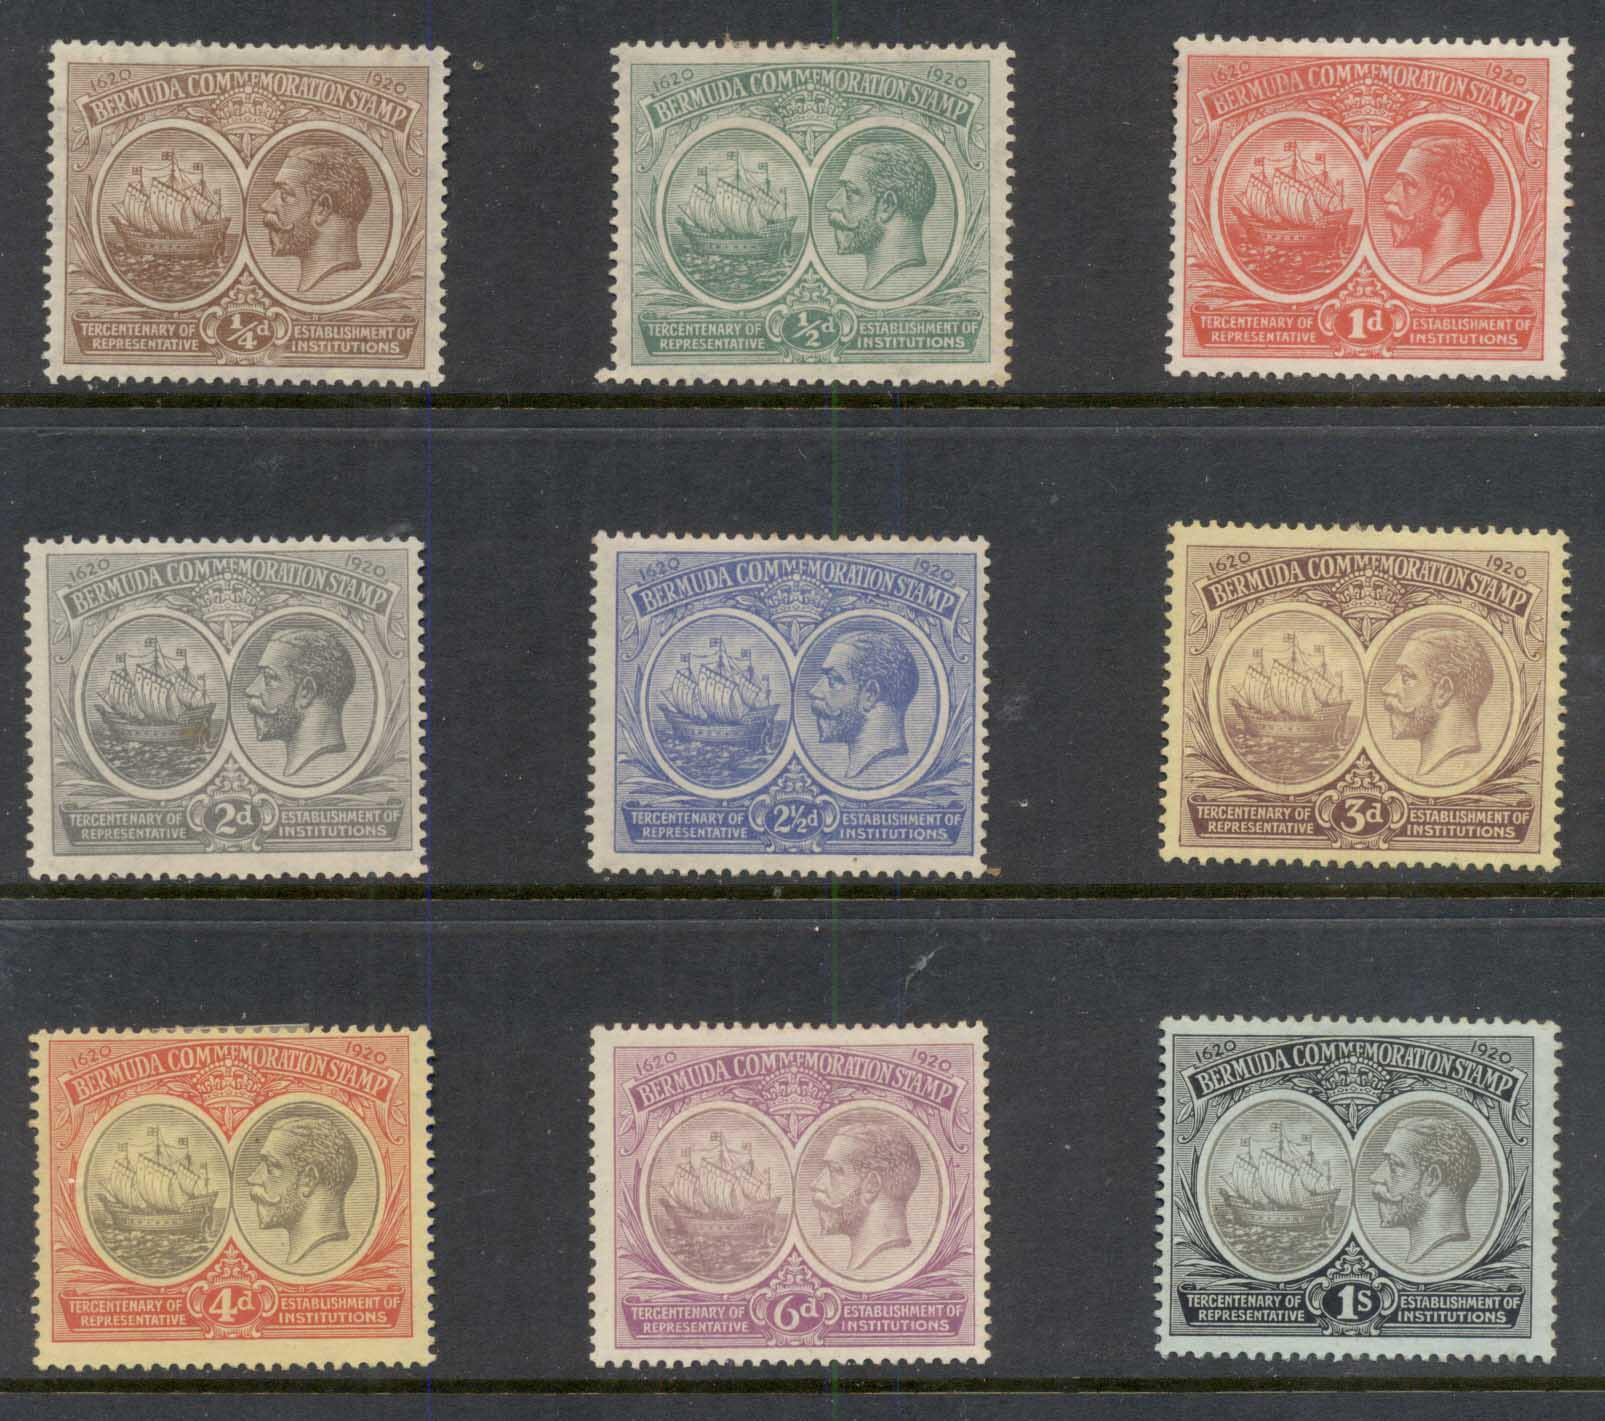 Bermuda 1920-1921 Tercentenary of Local Representative Institutions (light tones) MLH